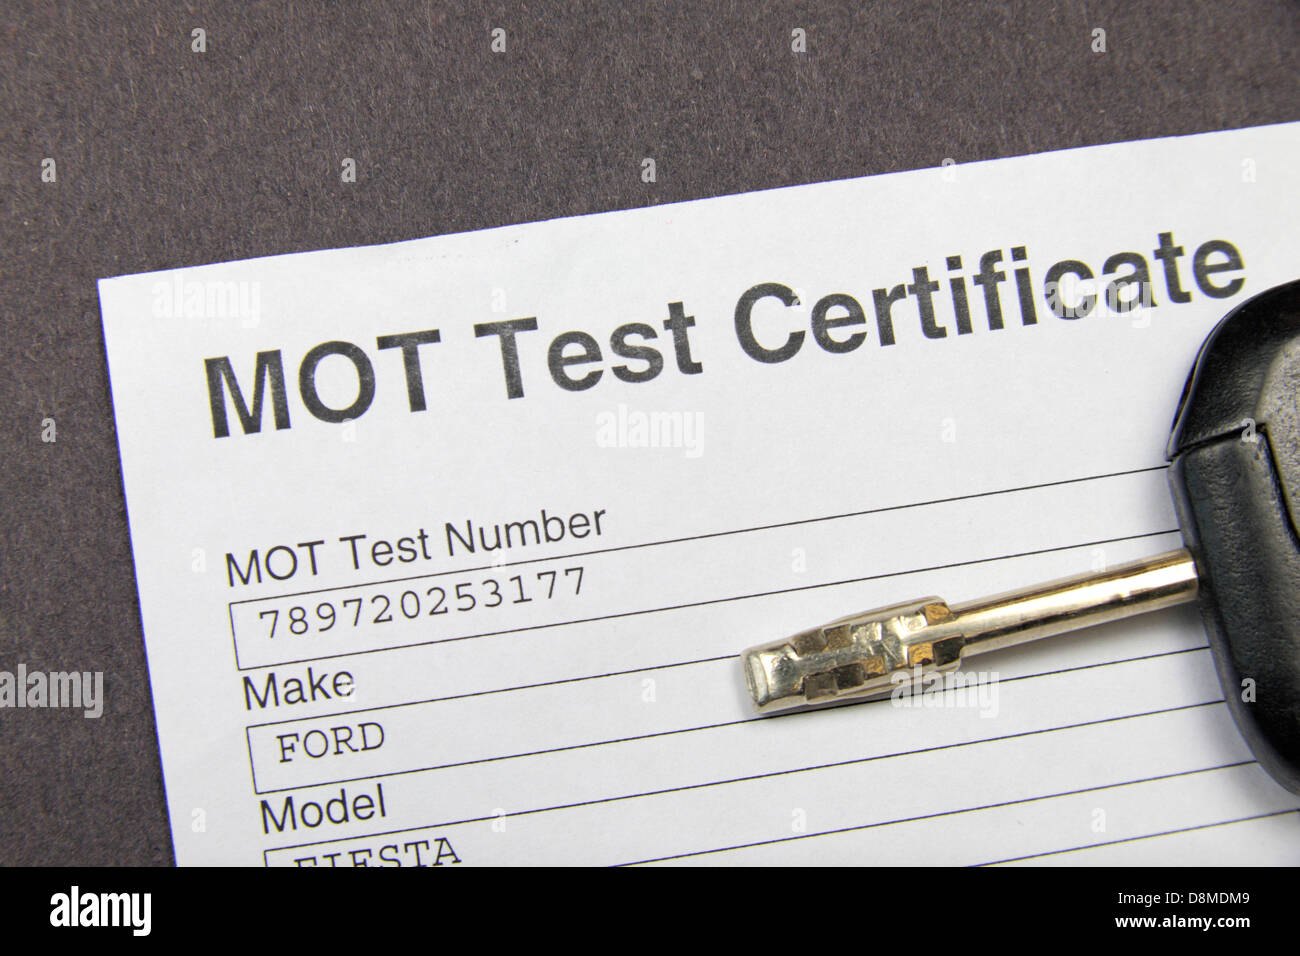 Mot test certificate stock photos mot test certificate stock a british mot test certificate as issued by the vosa vehicle operator services agency 1betcityfo Image collections